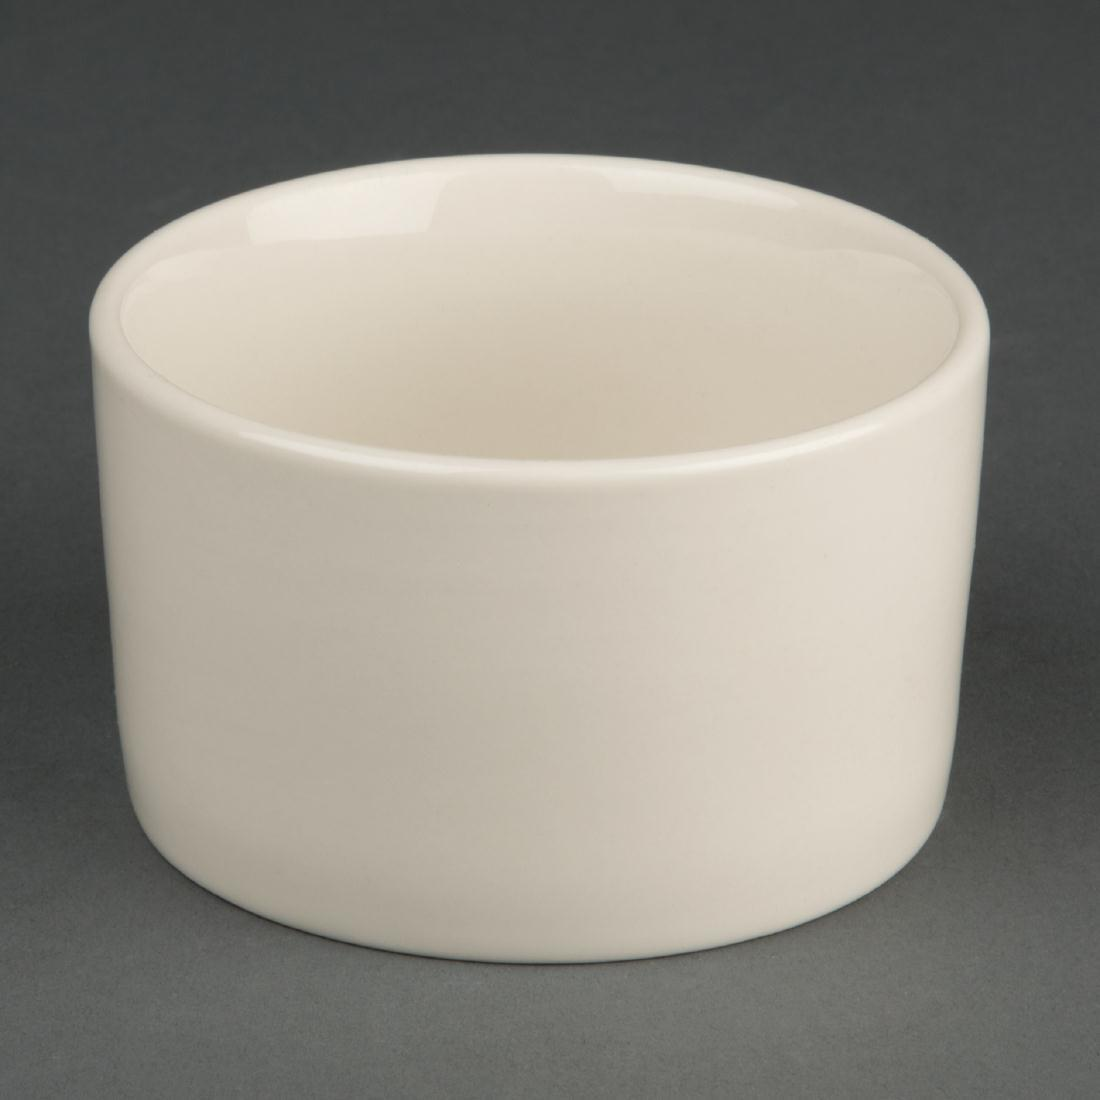 Olympia Ivory Contemporary Ramekins 90mm